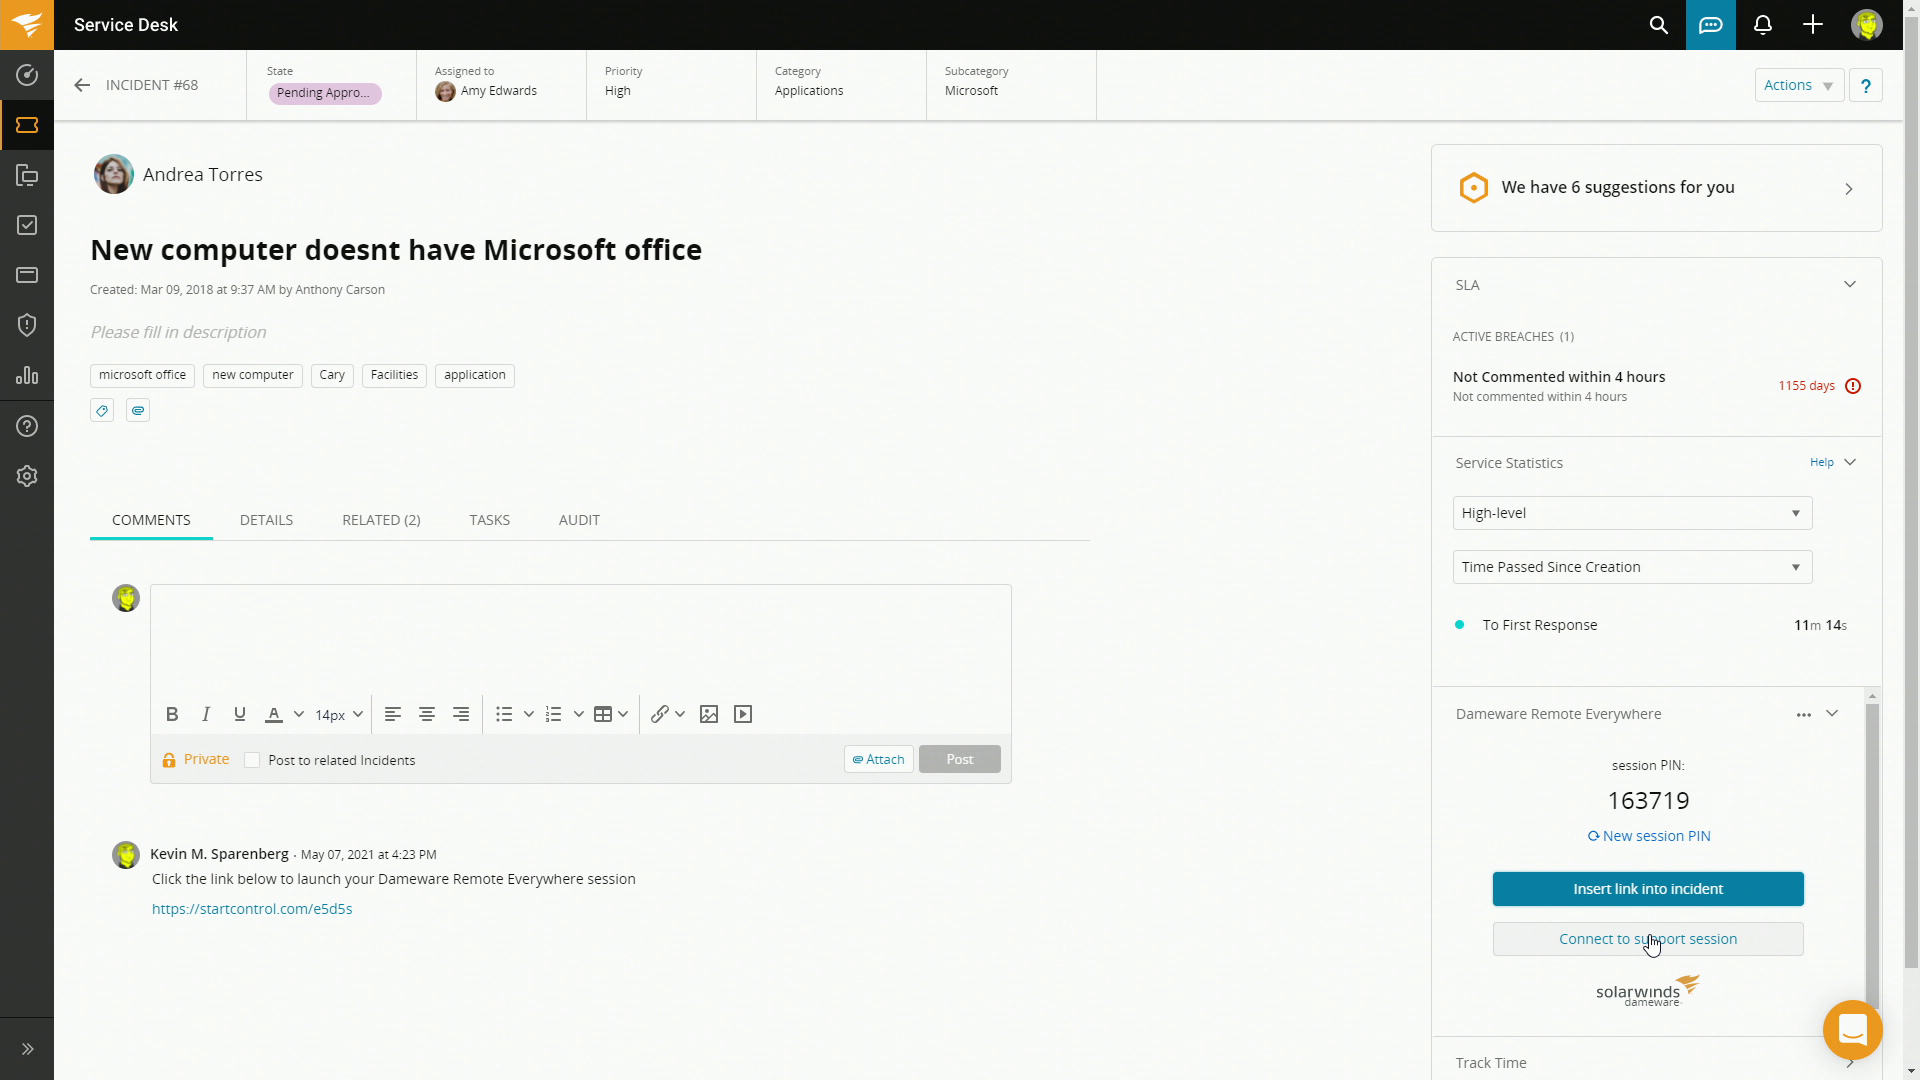 How to Integrate SolarWinds Service Desk with Dameware Remote Everywhere